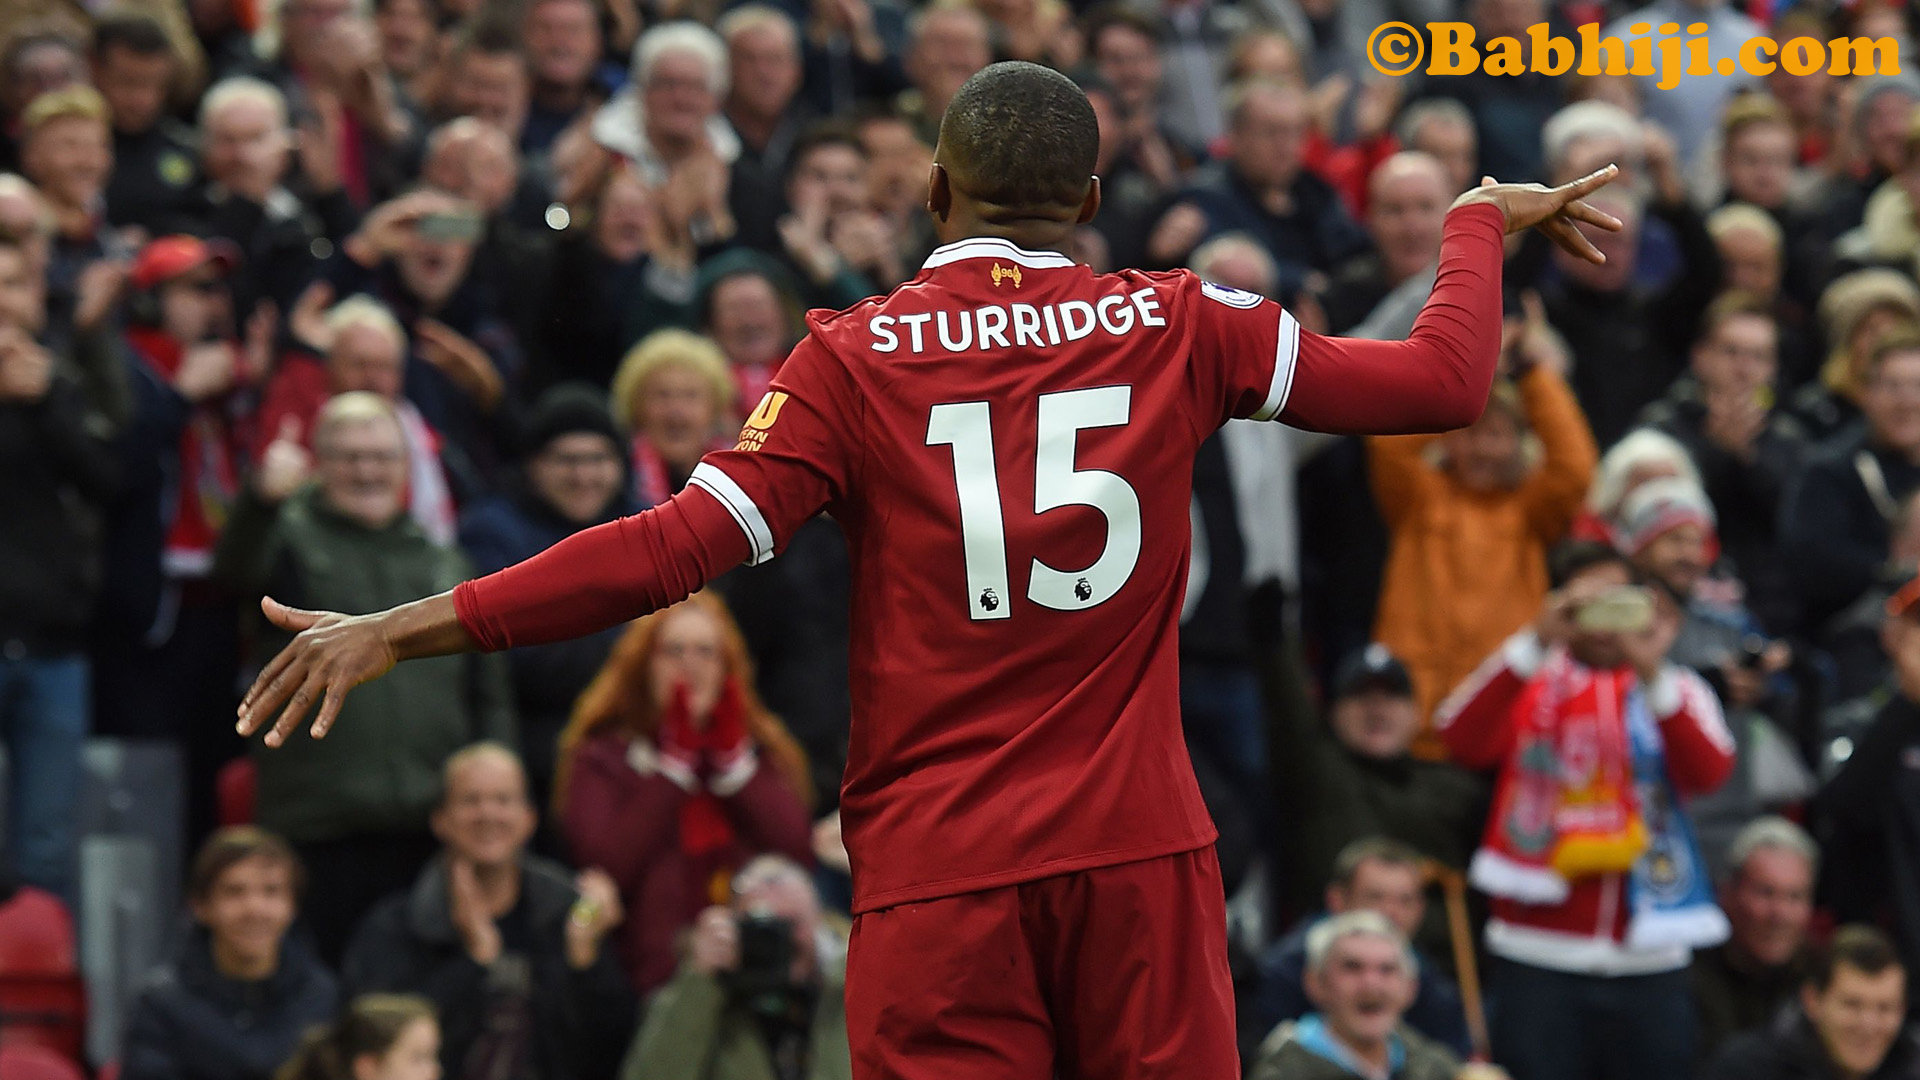 Sturridge Wallpapers